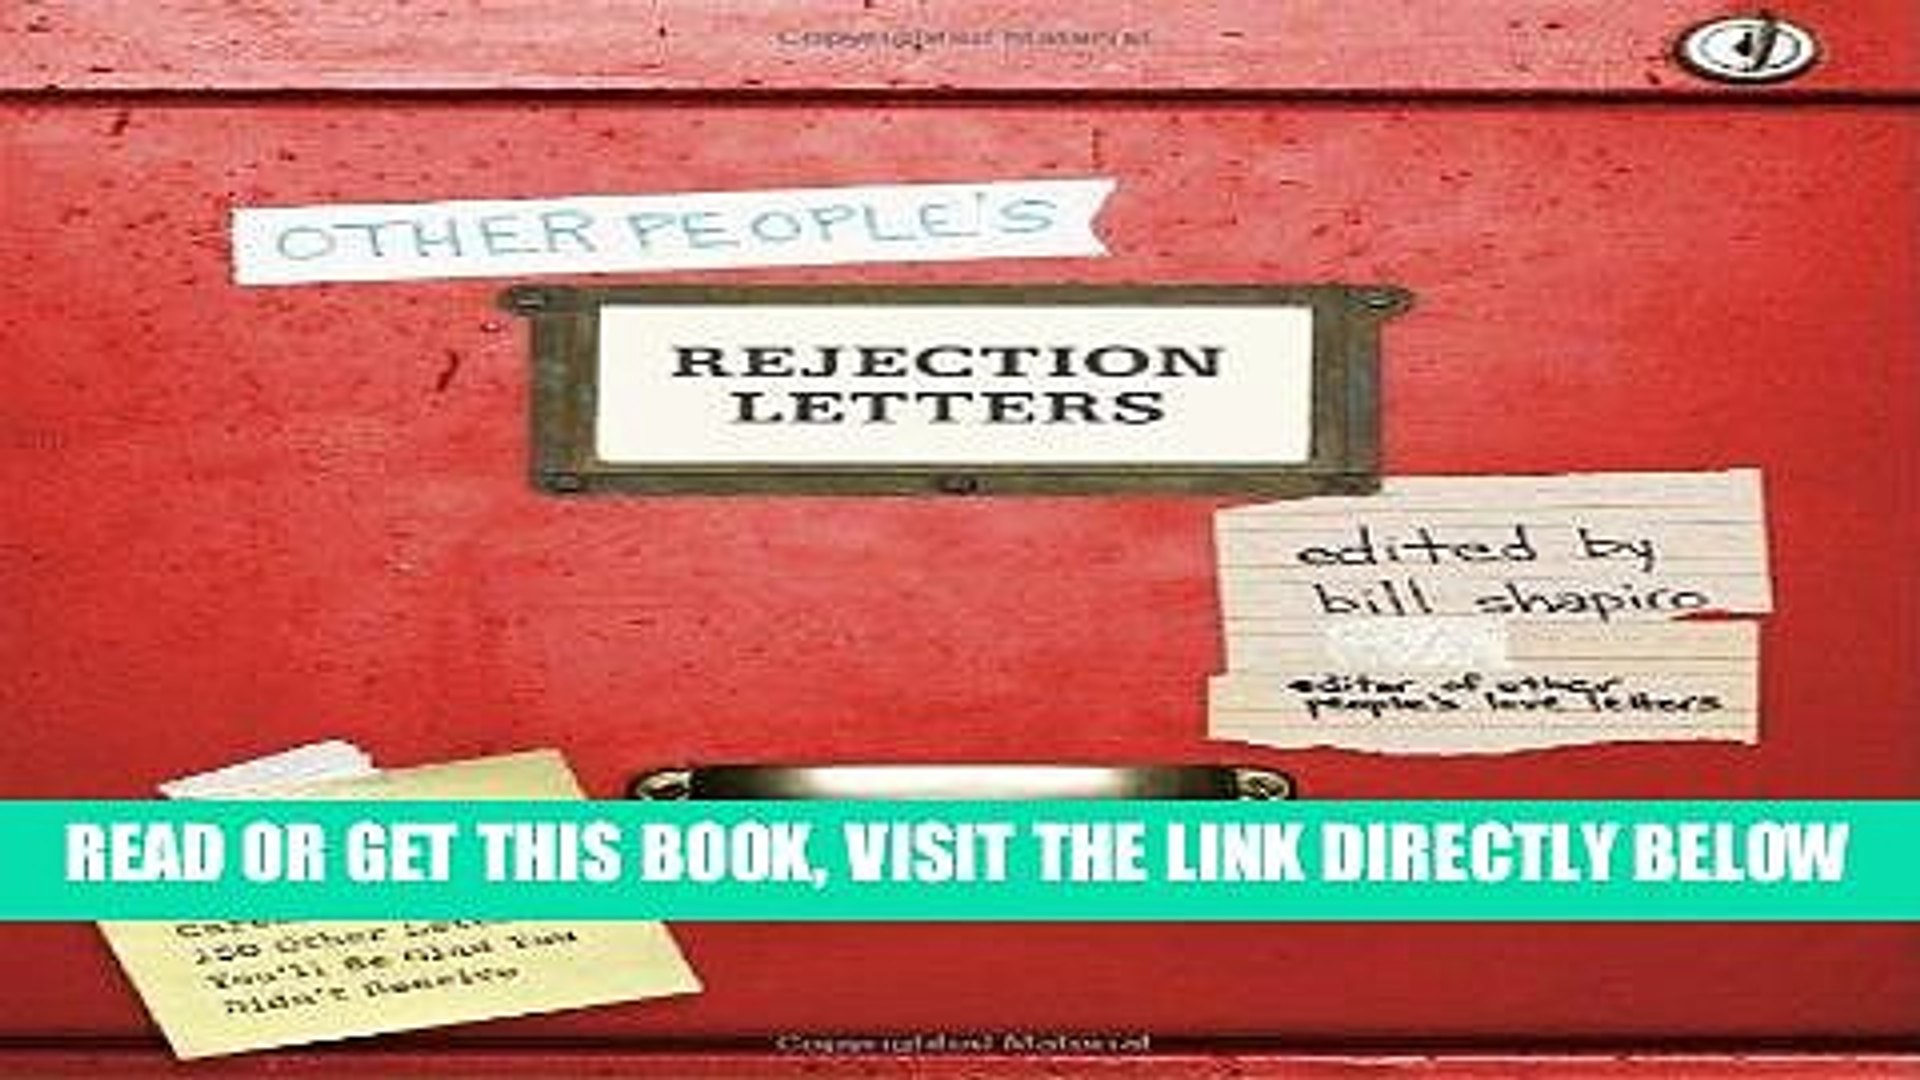 [Free Read] Other People s Rejection Letters: Relationship Enders, Career Killers, and 150 Other